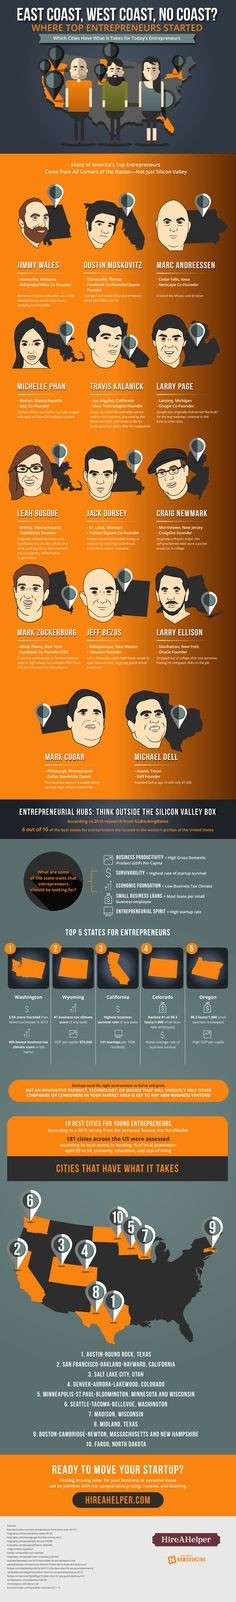 Where Did 13 Top Entrepreneurs Get Their Start? Which Cities Have What It Takes For Today's Entrepreneurs? #infographic